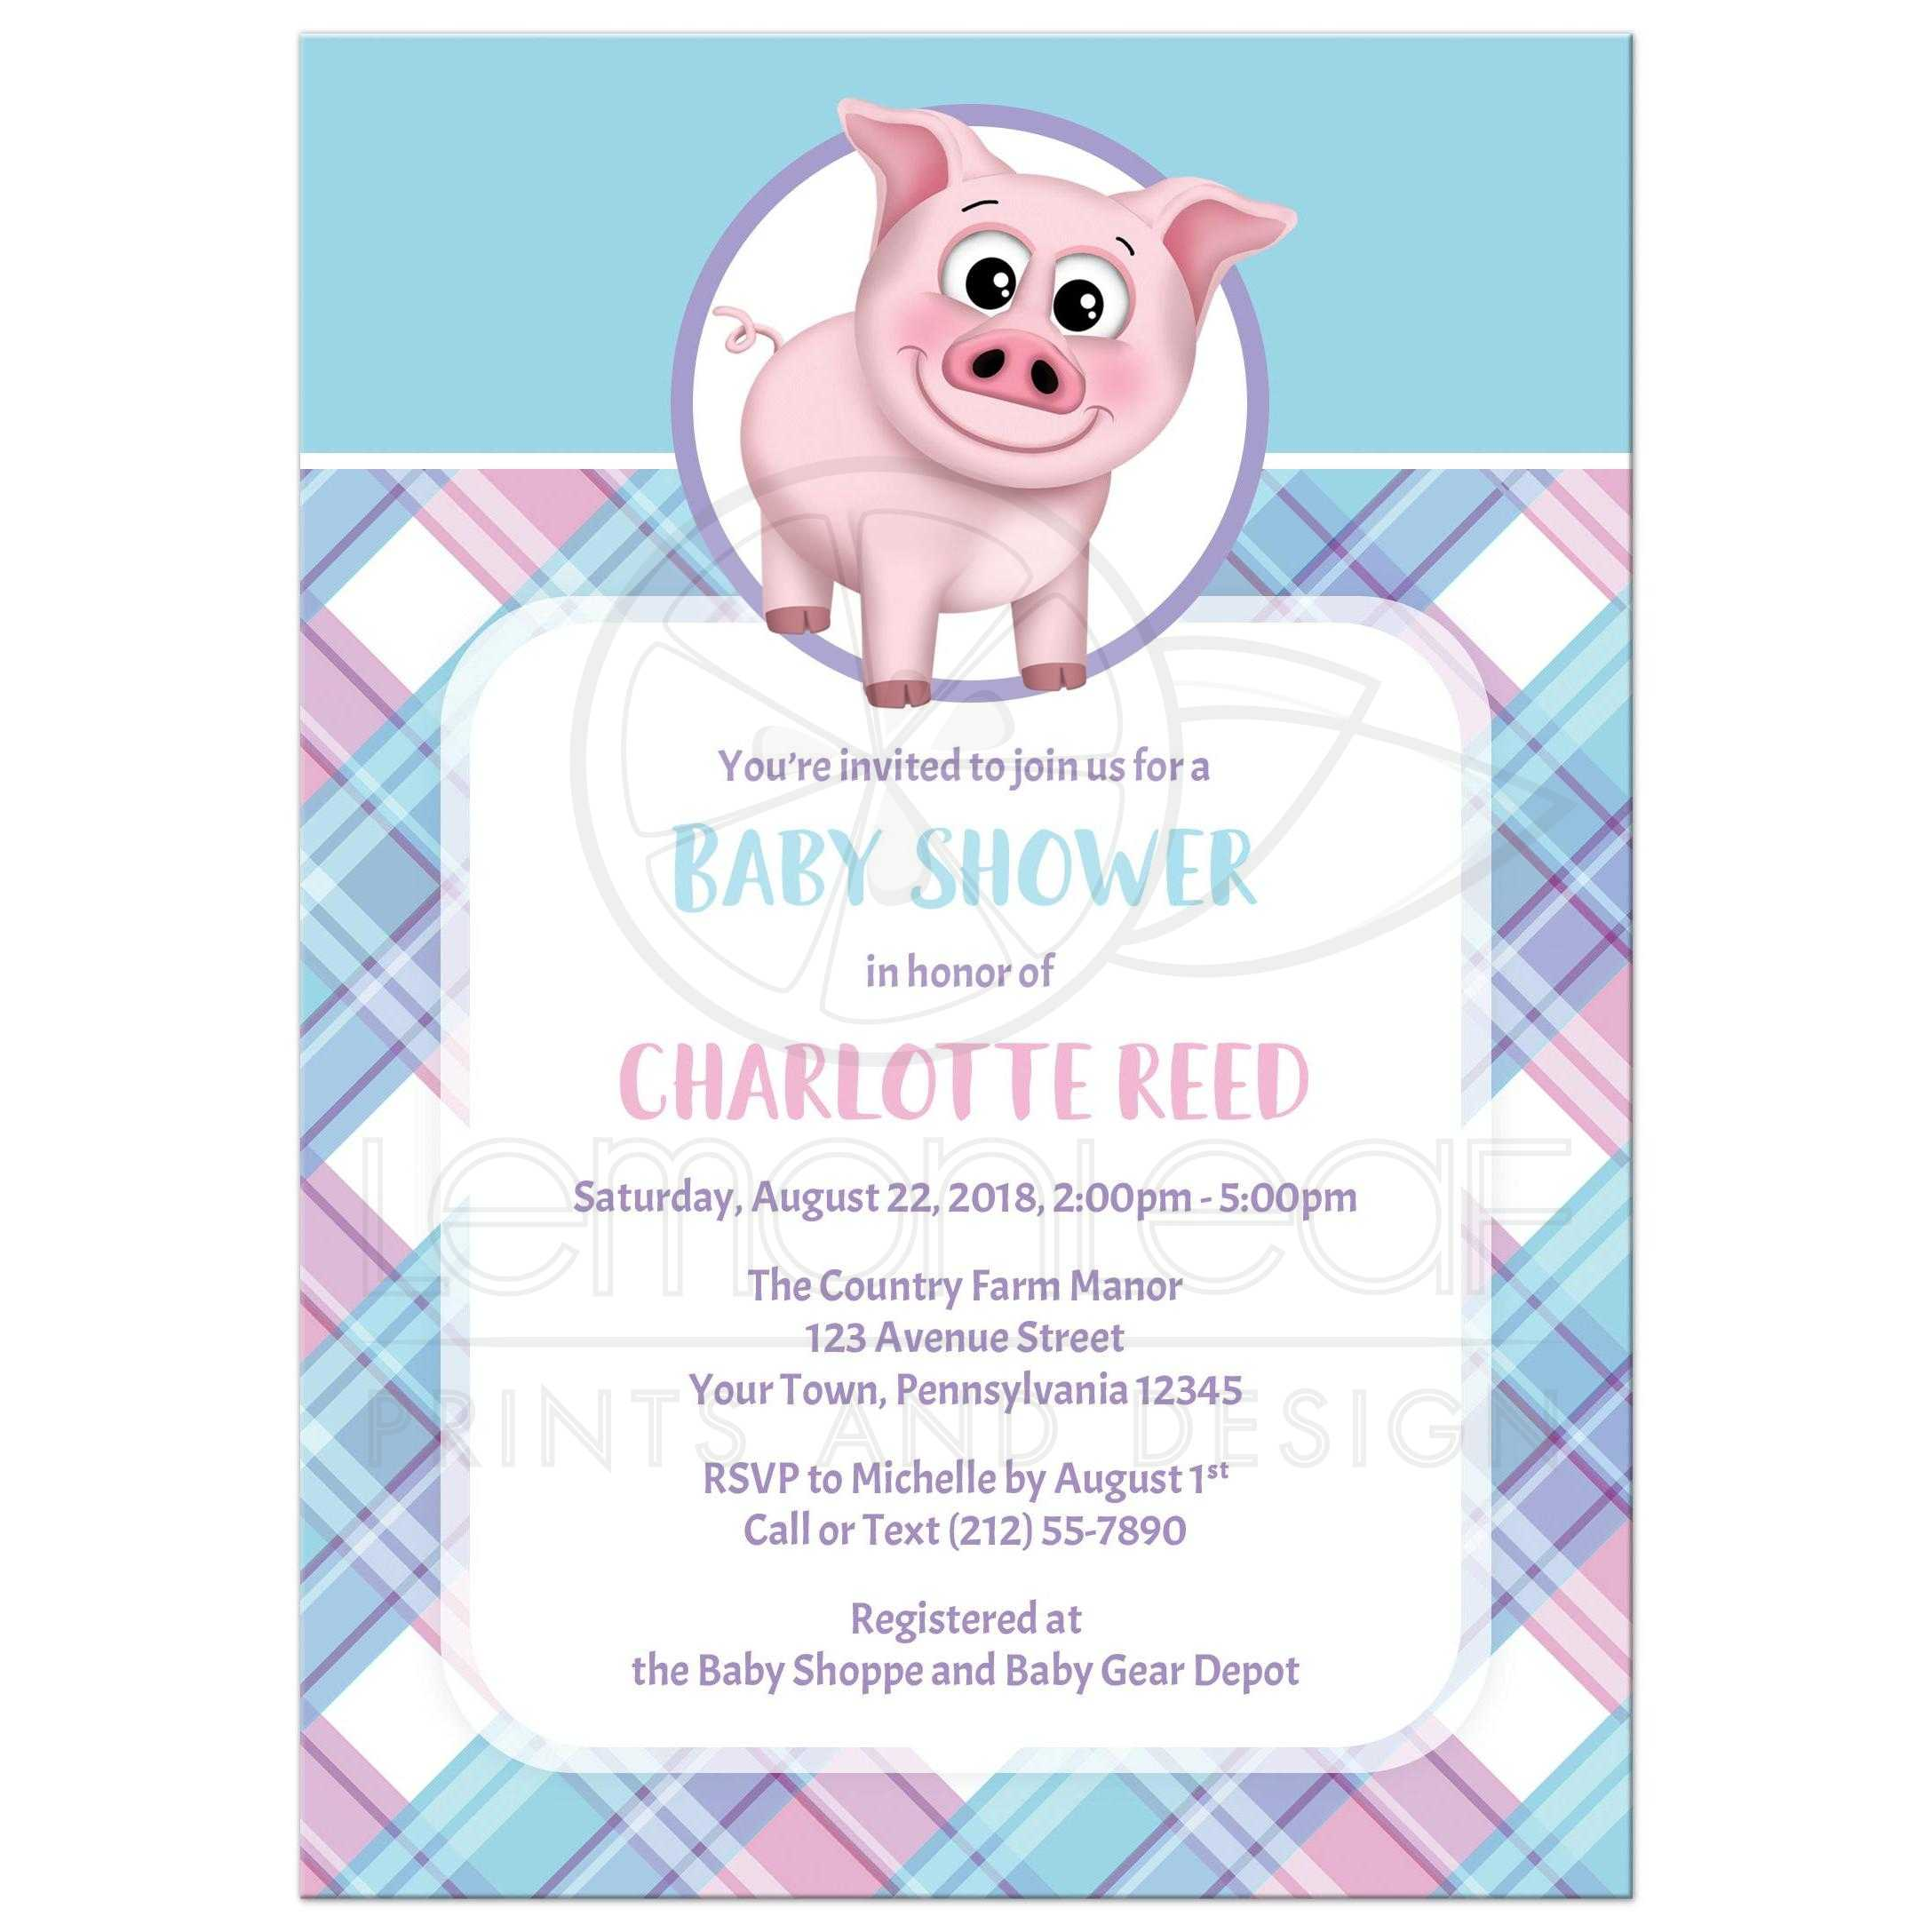 53653 Rectangle Hy Pig Pink Blue And Purple Plaid Baby Shower Invitations Jpg T 1523559243